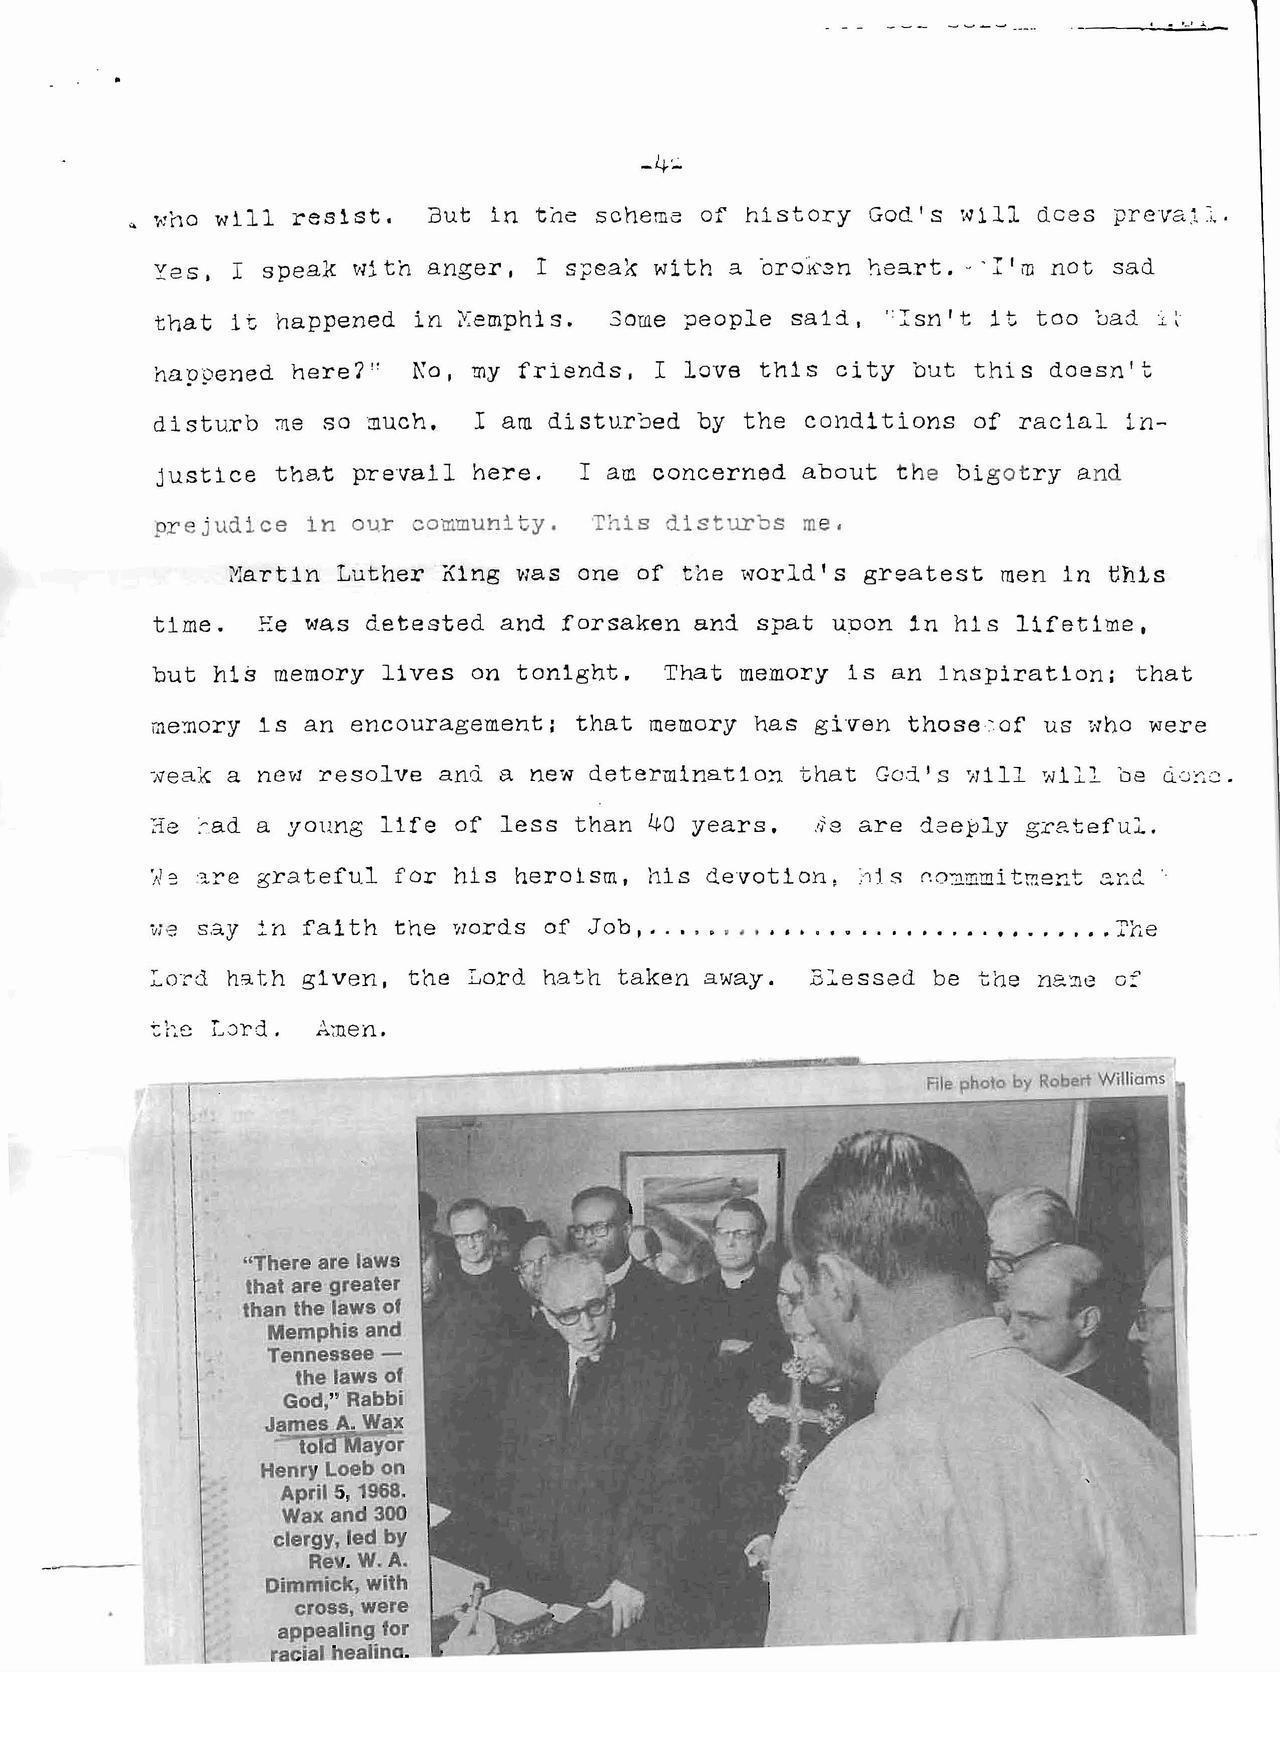 Rabbi Wax Sermon on Martin Luther King, Jr., April 5, 1968